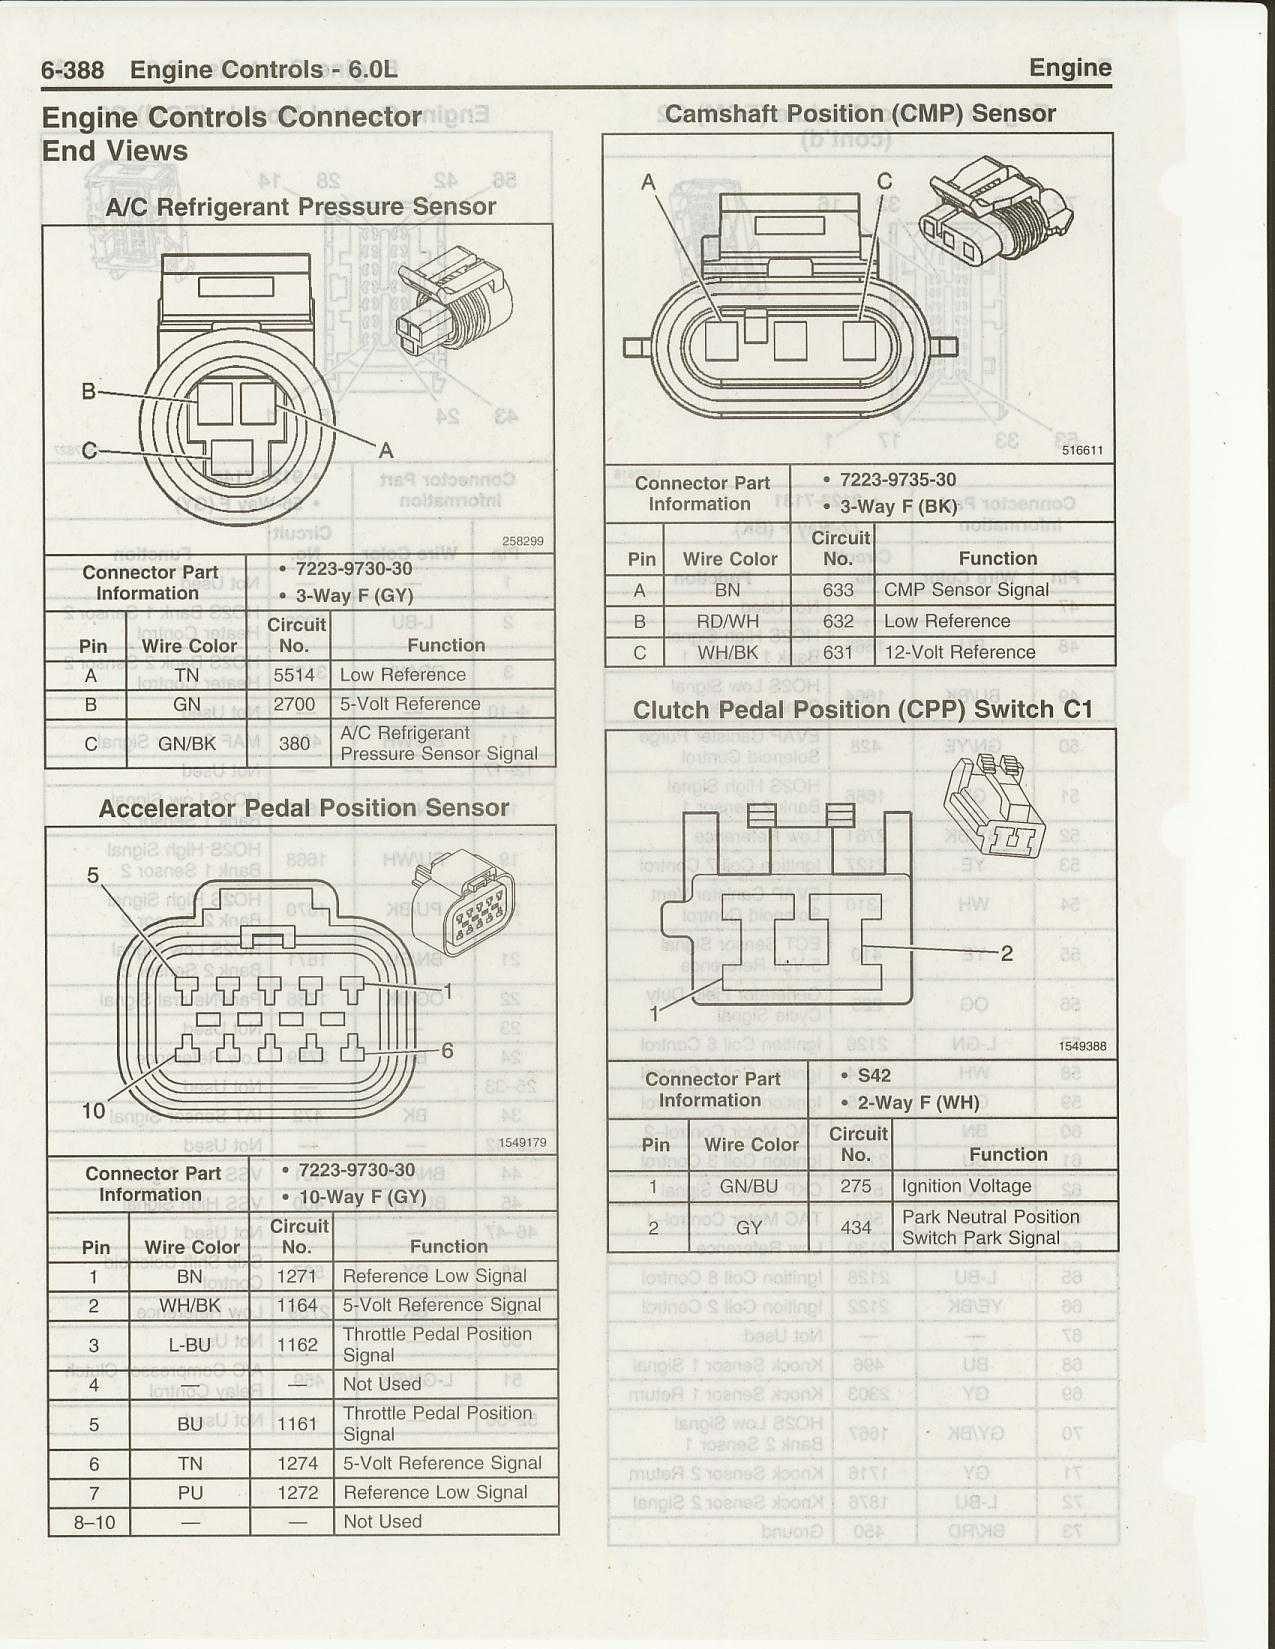 enginecontrols10 ls3 sensor wiring diagrams l3 wiring diagram \u2022 wiring diagrams j 5R55E Transmission Wiring Diagram at bayanpartner.co